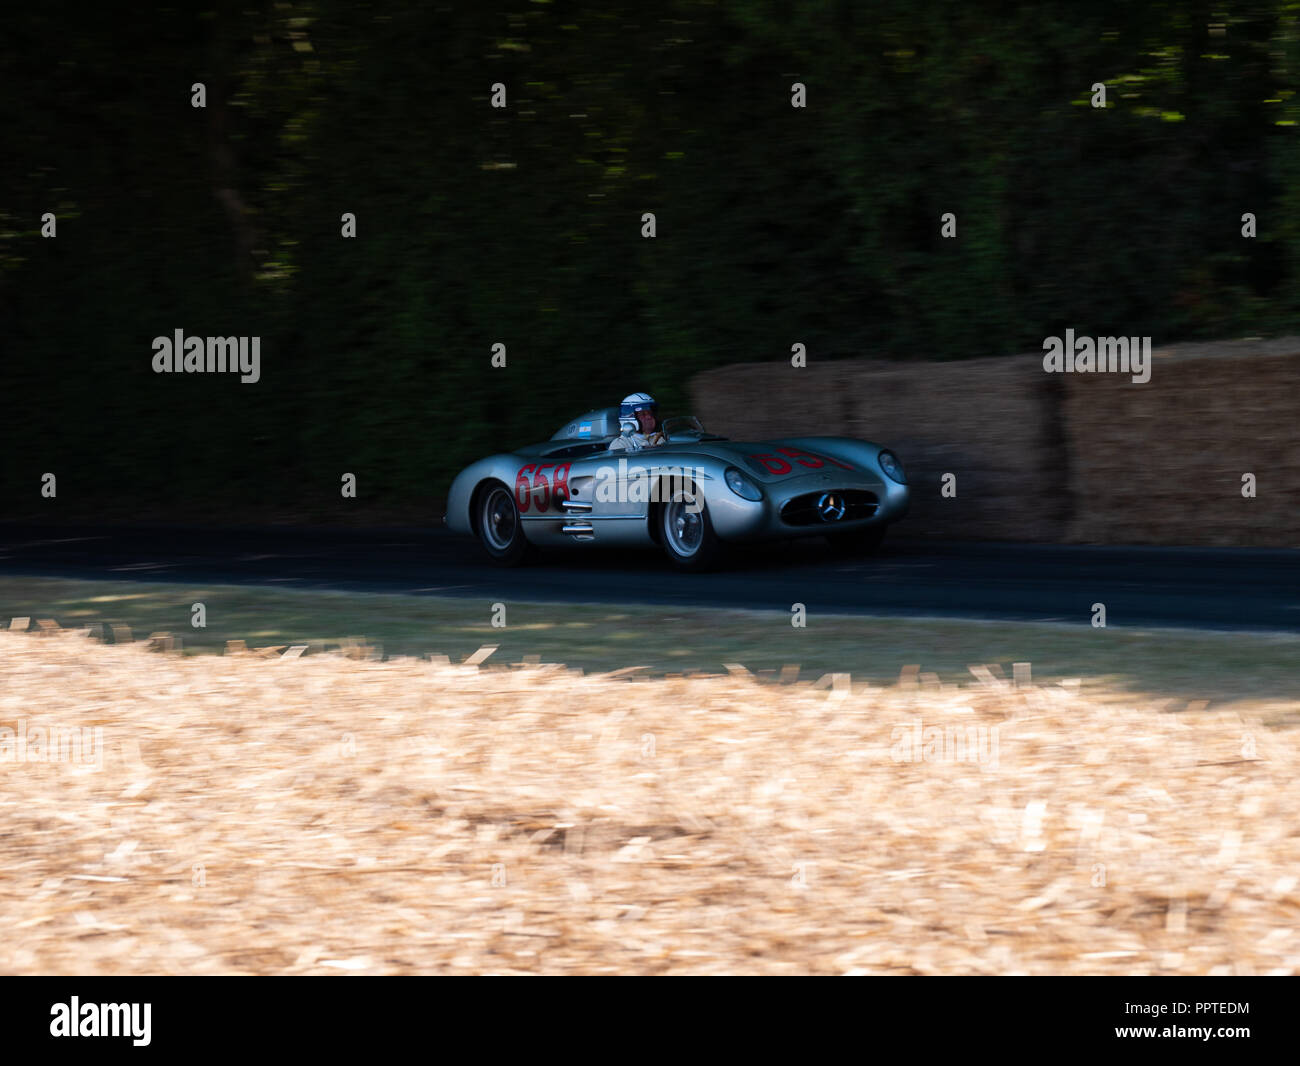 Mercedes-Benz 300SLR at Goodwood Festival Of Speed 2018. - Stock Image